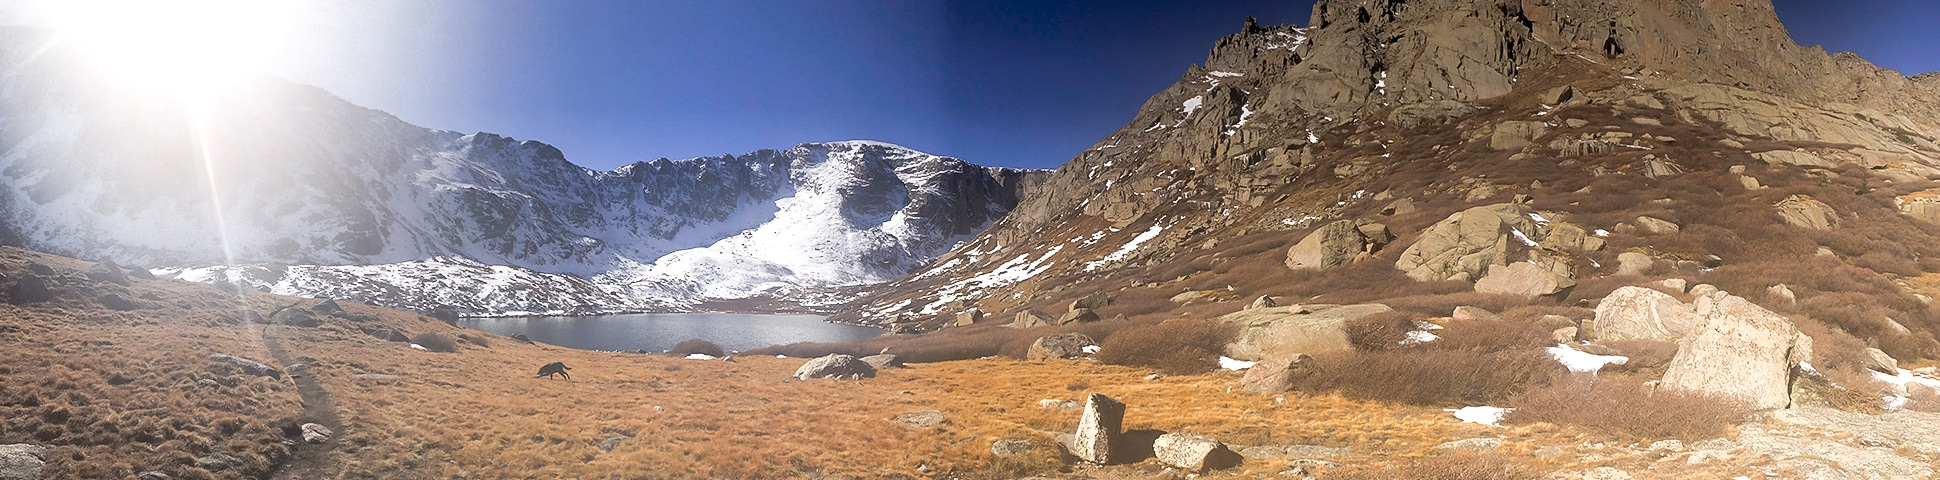 Panoramic view of Chicago Lakes hike near Denver, Colorado